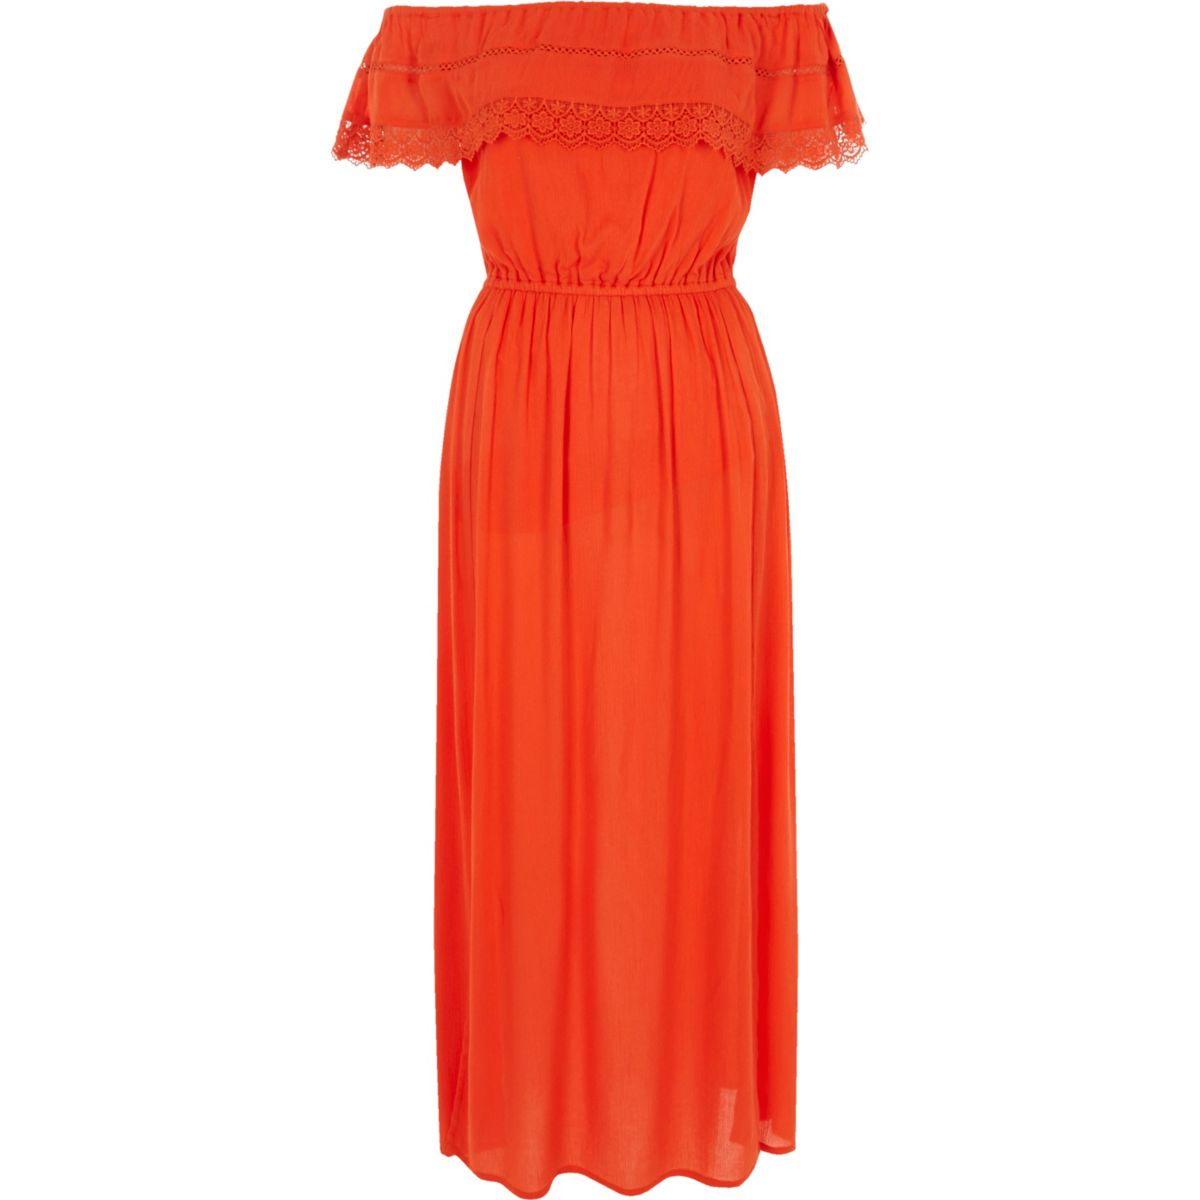 Orange bardot frill maxi dress